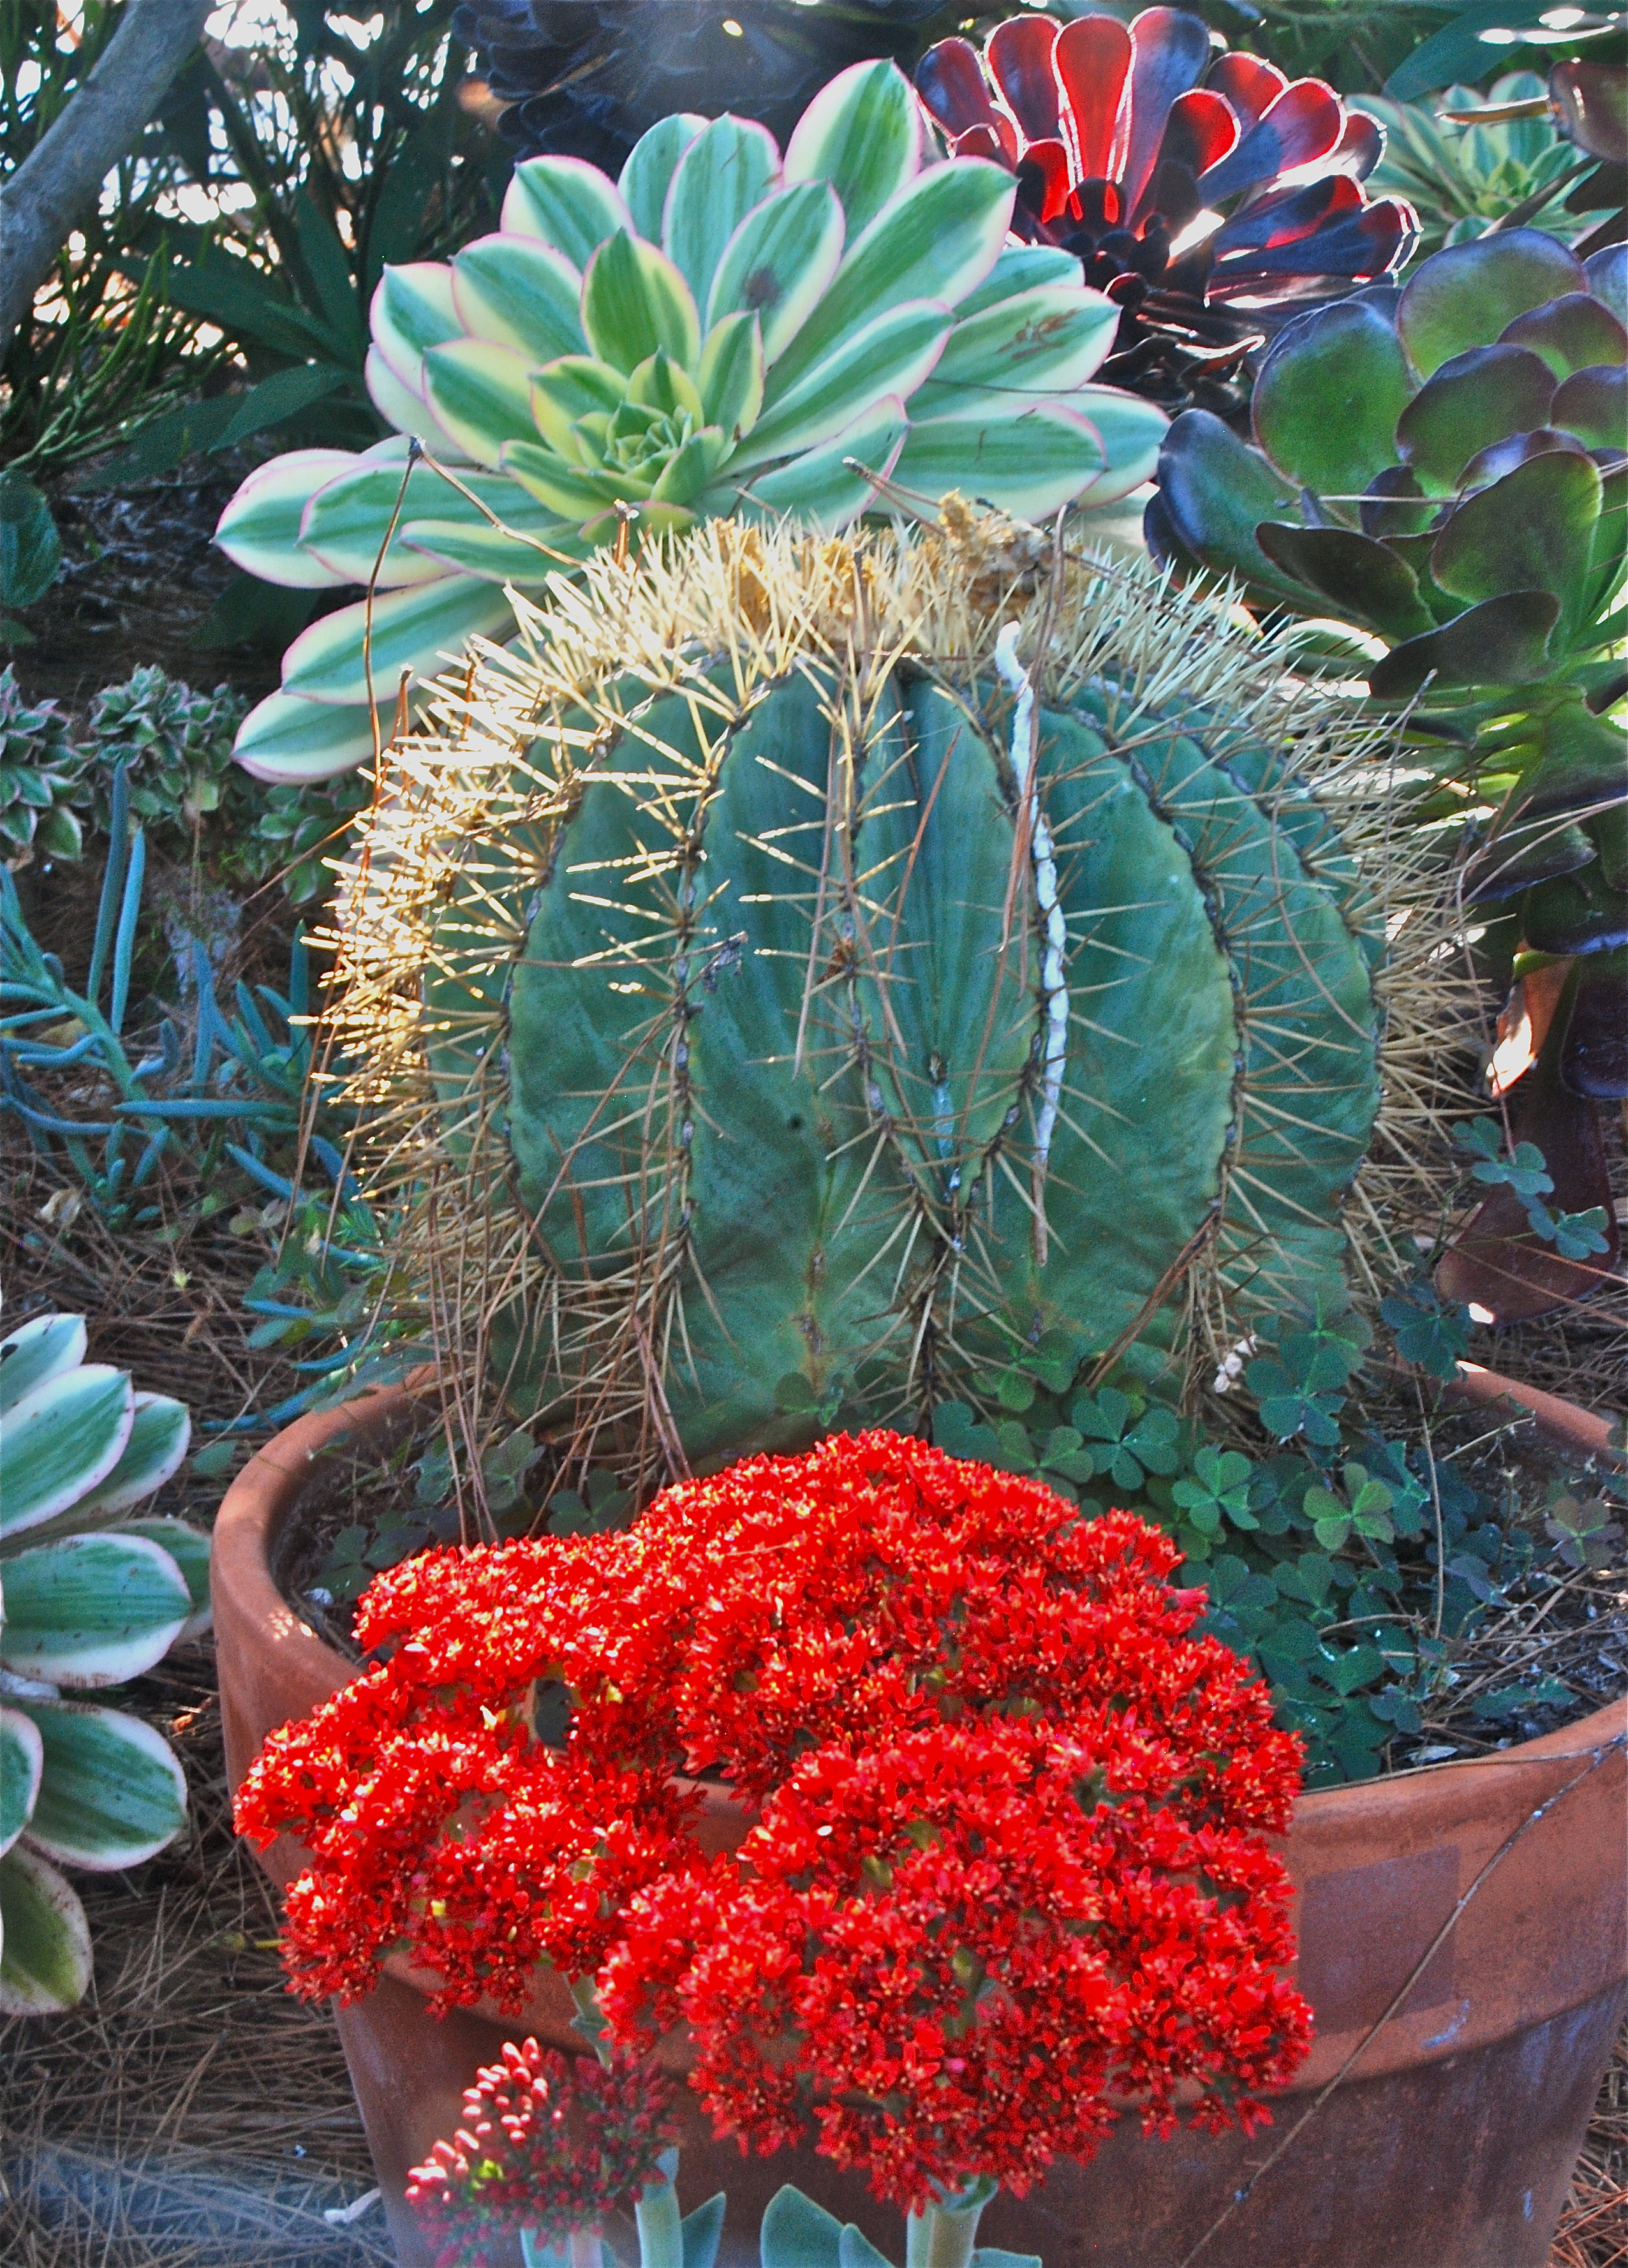 Aeonium 'Sunburst', Ferocactus glaucescens, and the Brilliant Red Bloom of a Crassula perfoliata var. falcata